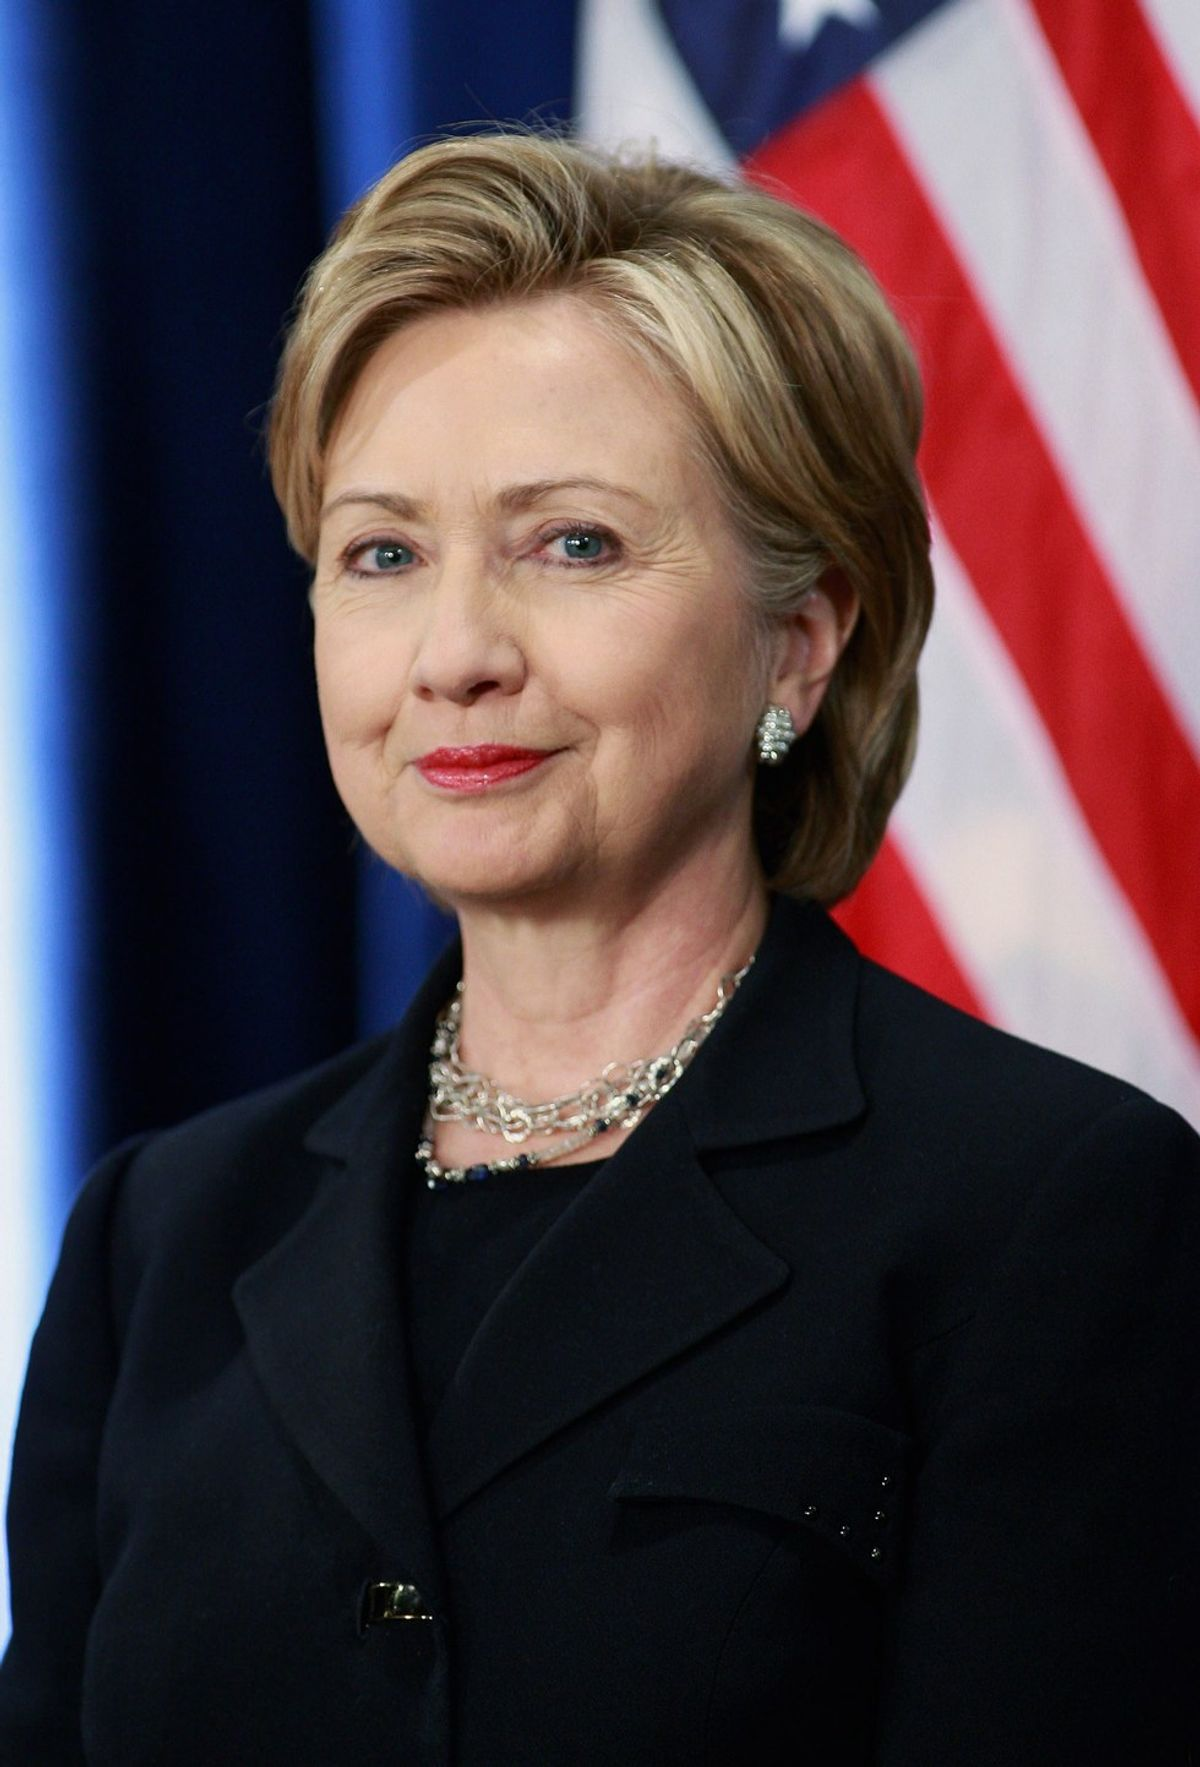 5 Reasons Hillary Clinton Could Be Our Next President